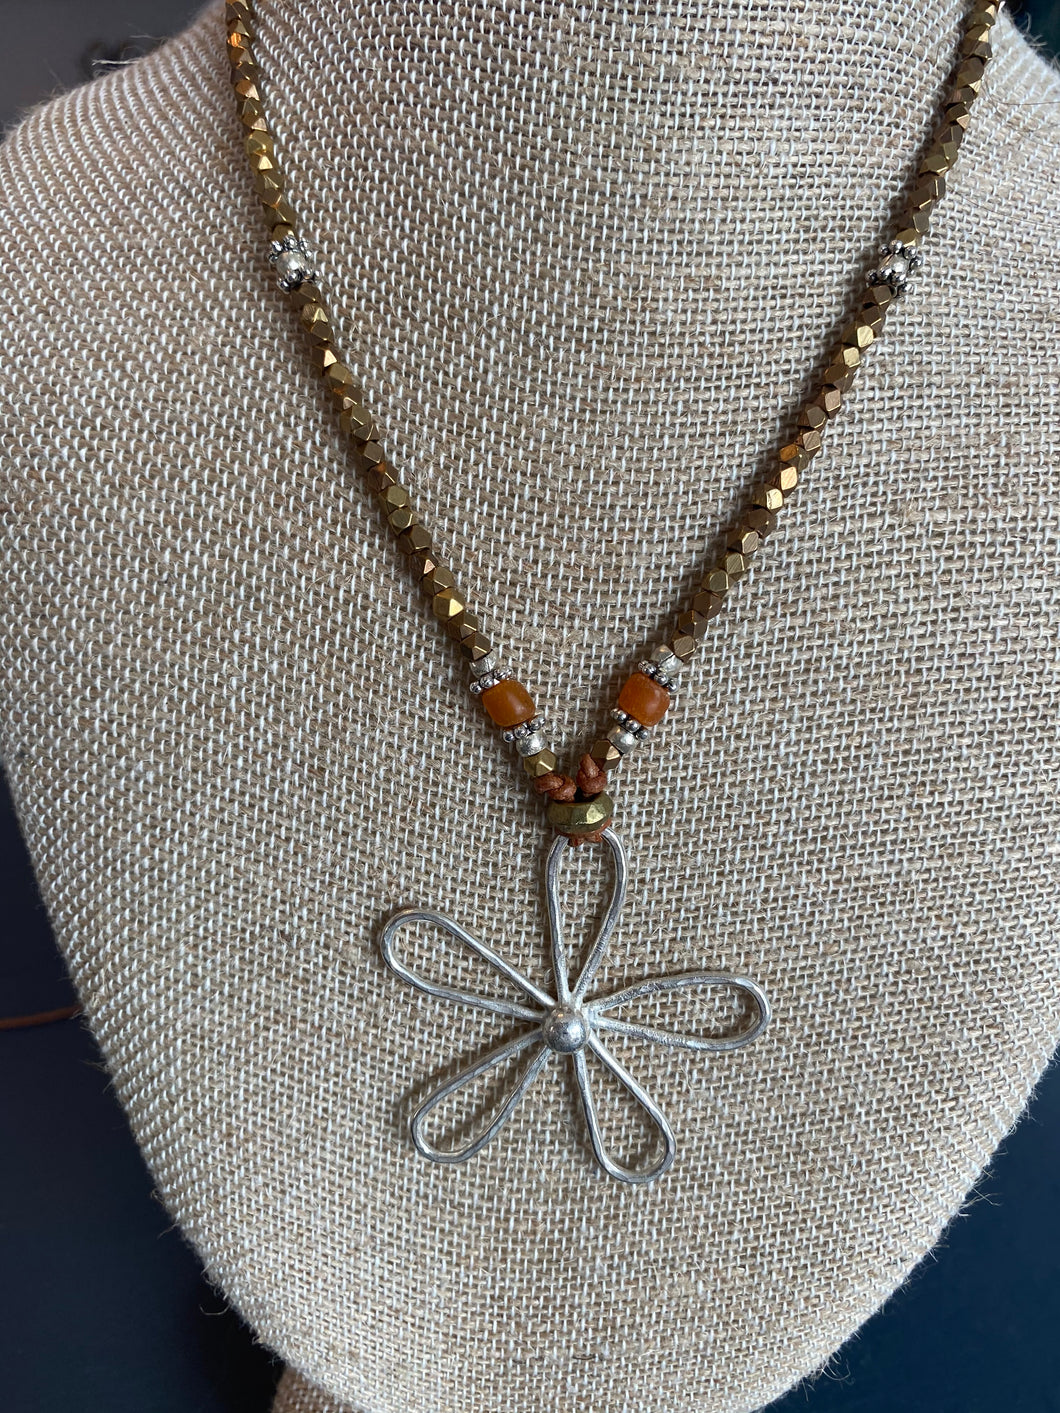 5 Petal Hammered Necklace with Accent Beads